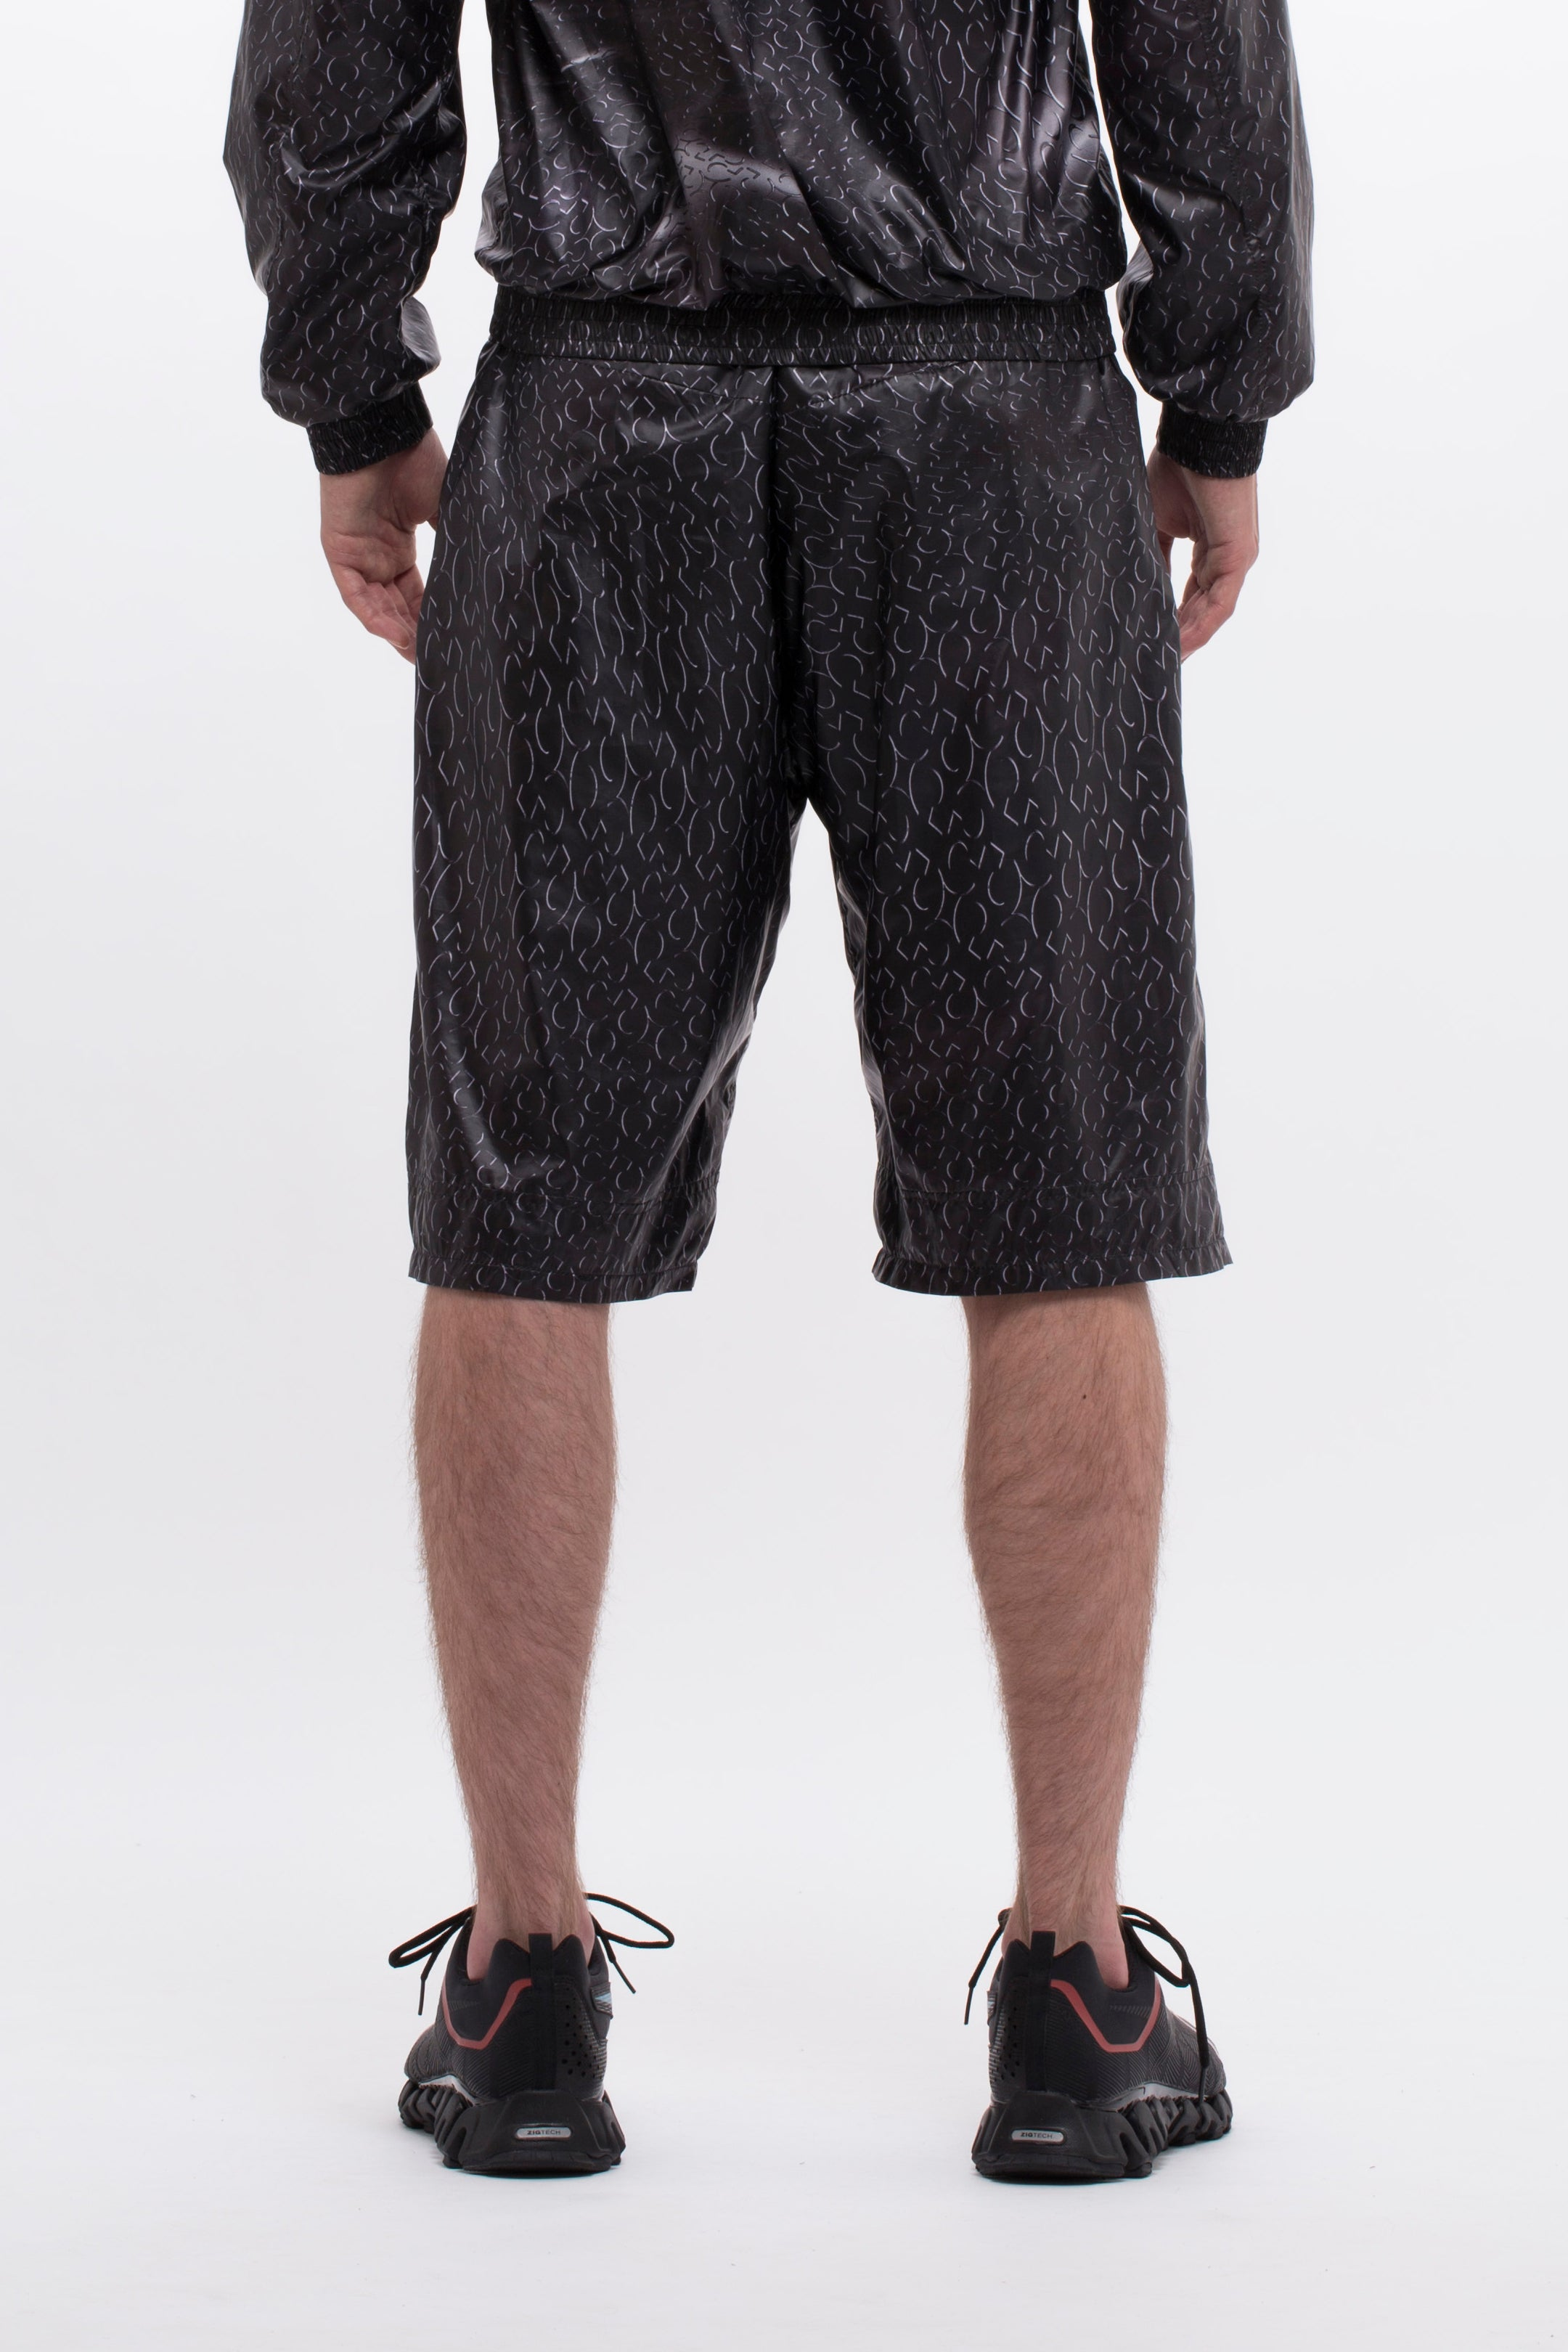 MONOGRAM SHORTS - BLACK